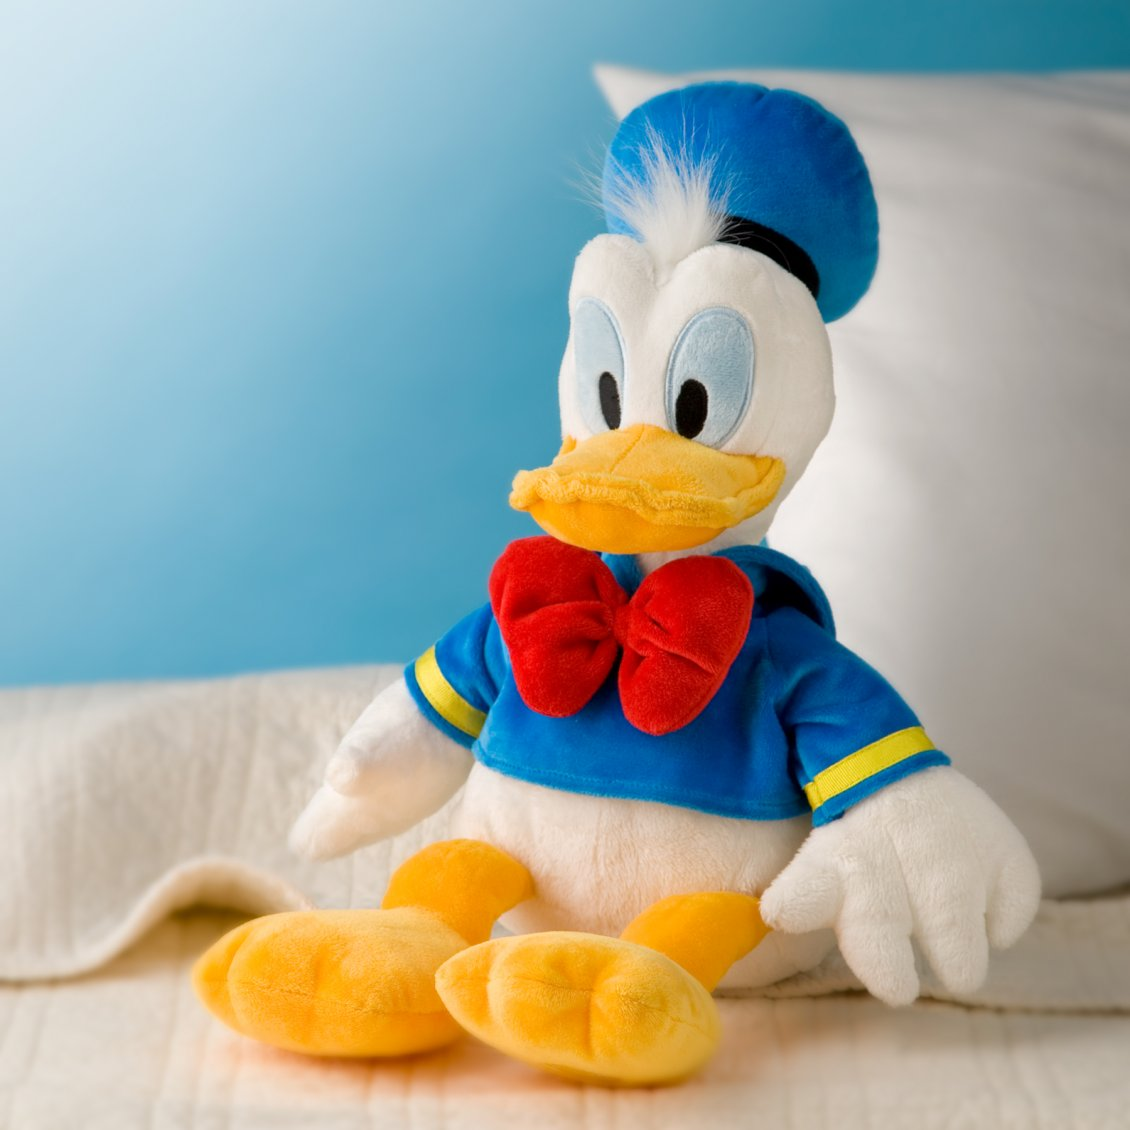 Photo Wallpaper 3d In Tampa Fl Donald Duck Plush Toy On The Sofa